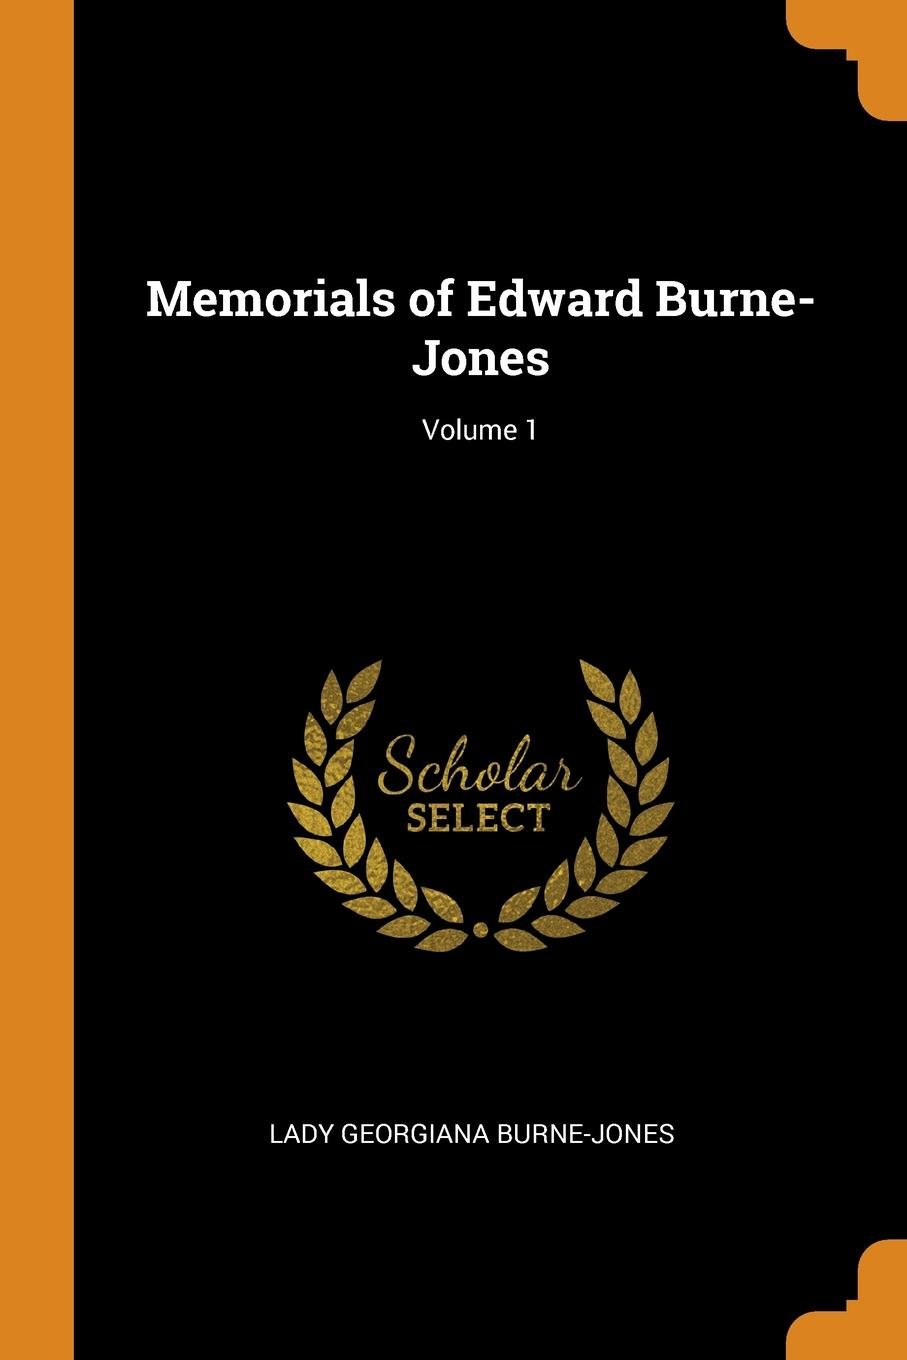 Lady Georgiana Burne-Jones. Memorials of Edward Burne-Jones; Volume 1